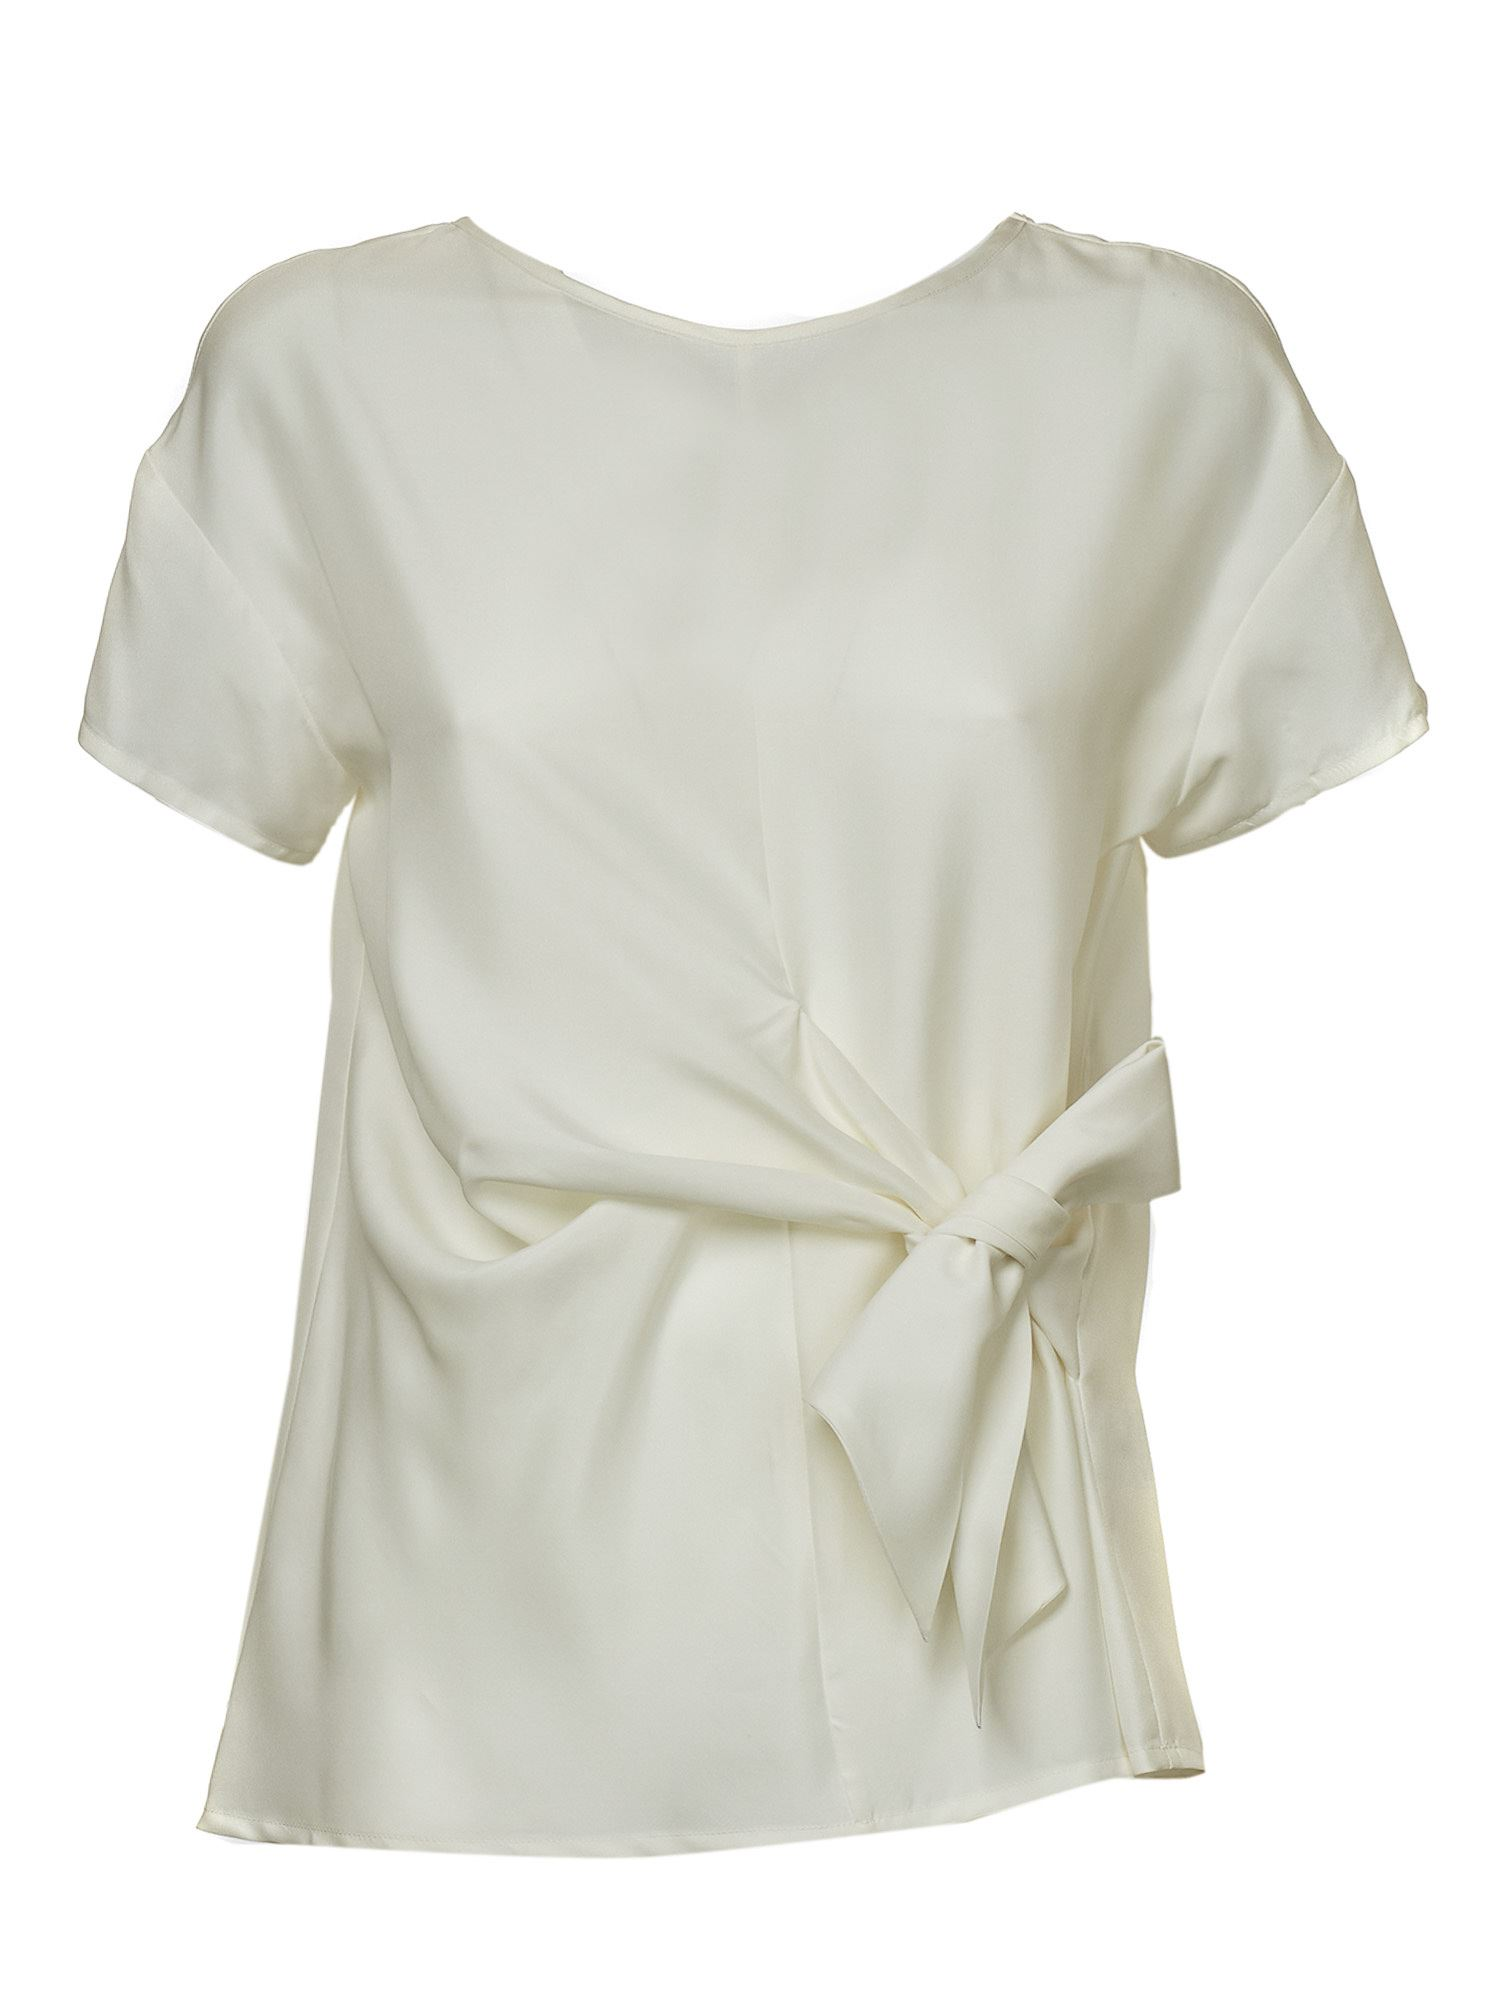 P.a.r.o.s.h. BOW TOP IN WHITE